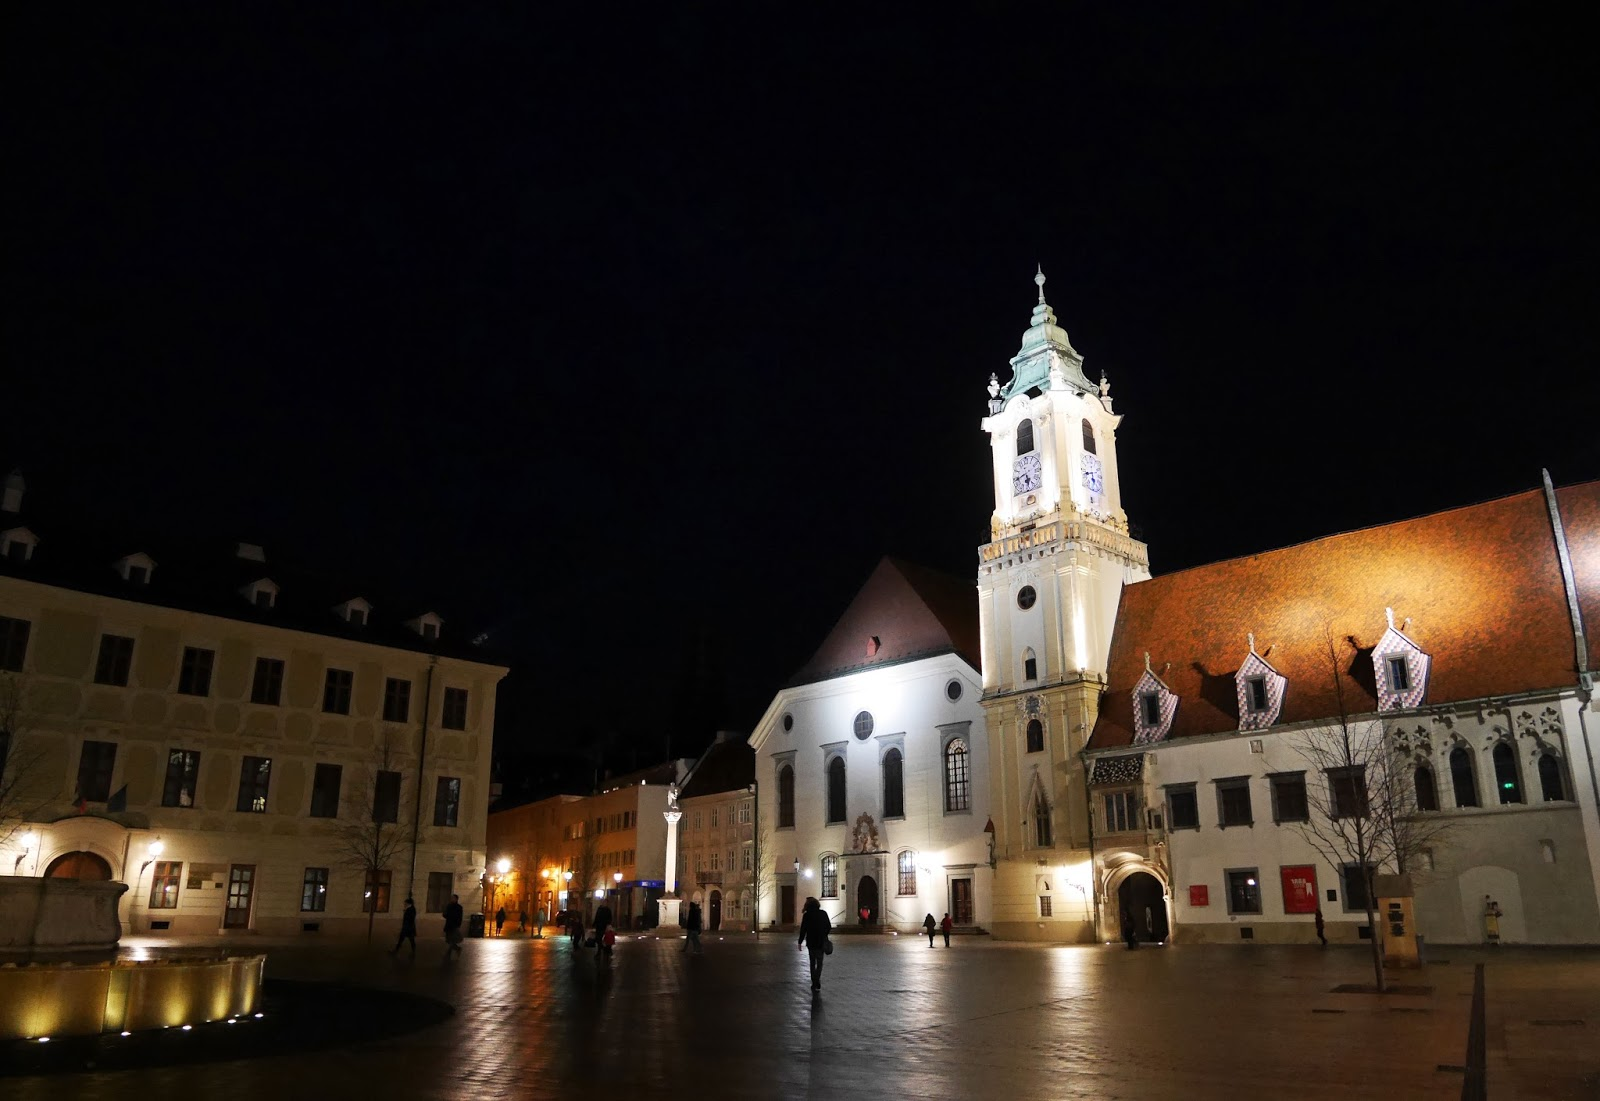 Bratislava's Old Town Hall at night